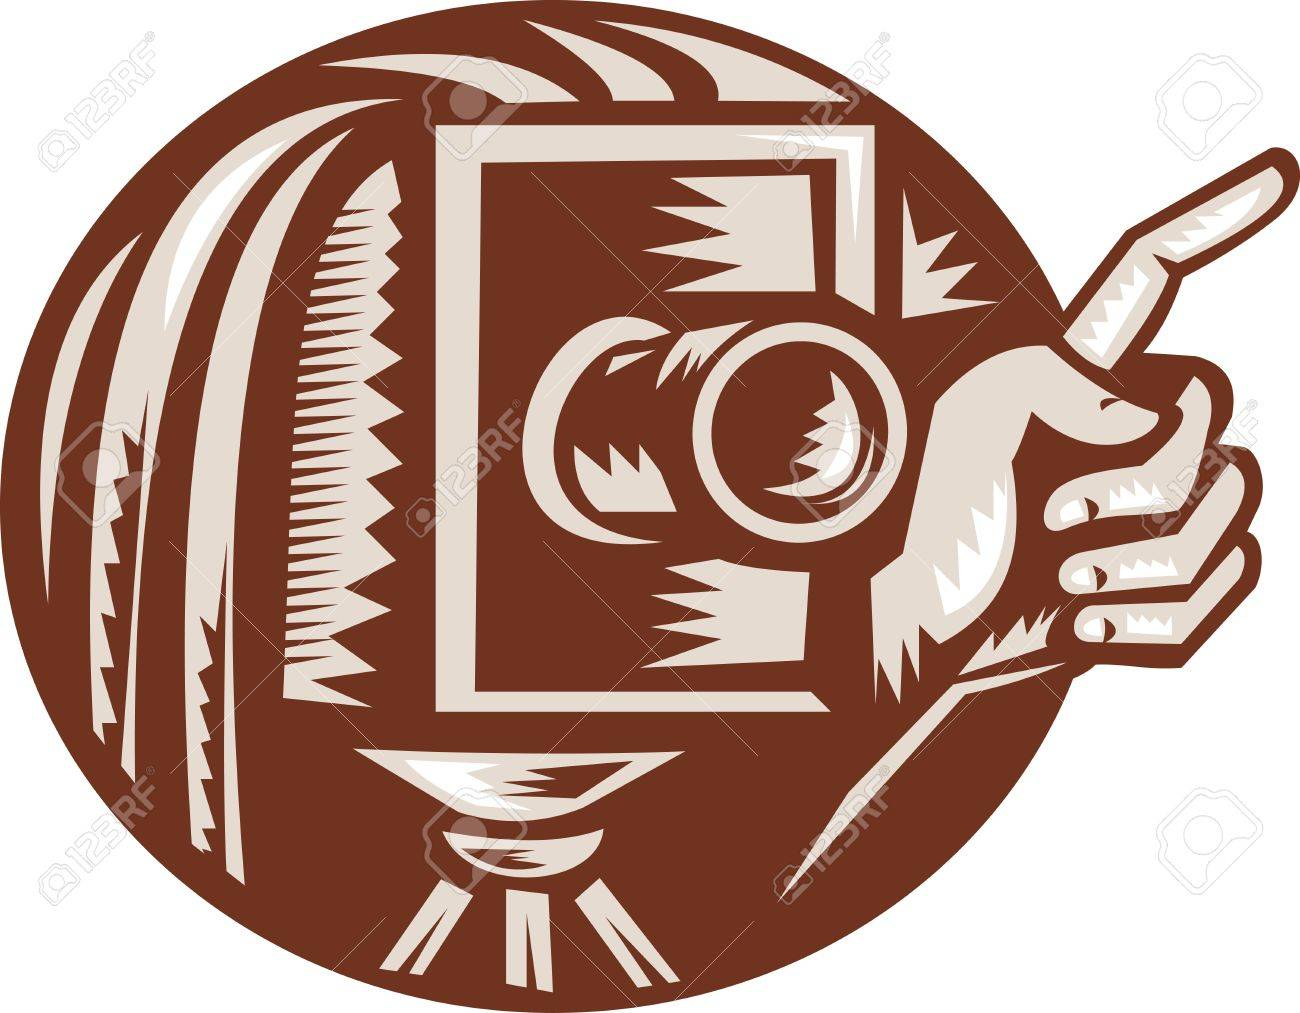 Illustration of a vintage bellow camera with hand pointing done in retro woodcut style set inside circle Stock Vector - 12554619